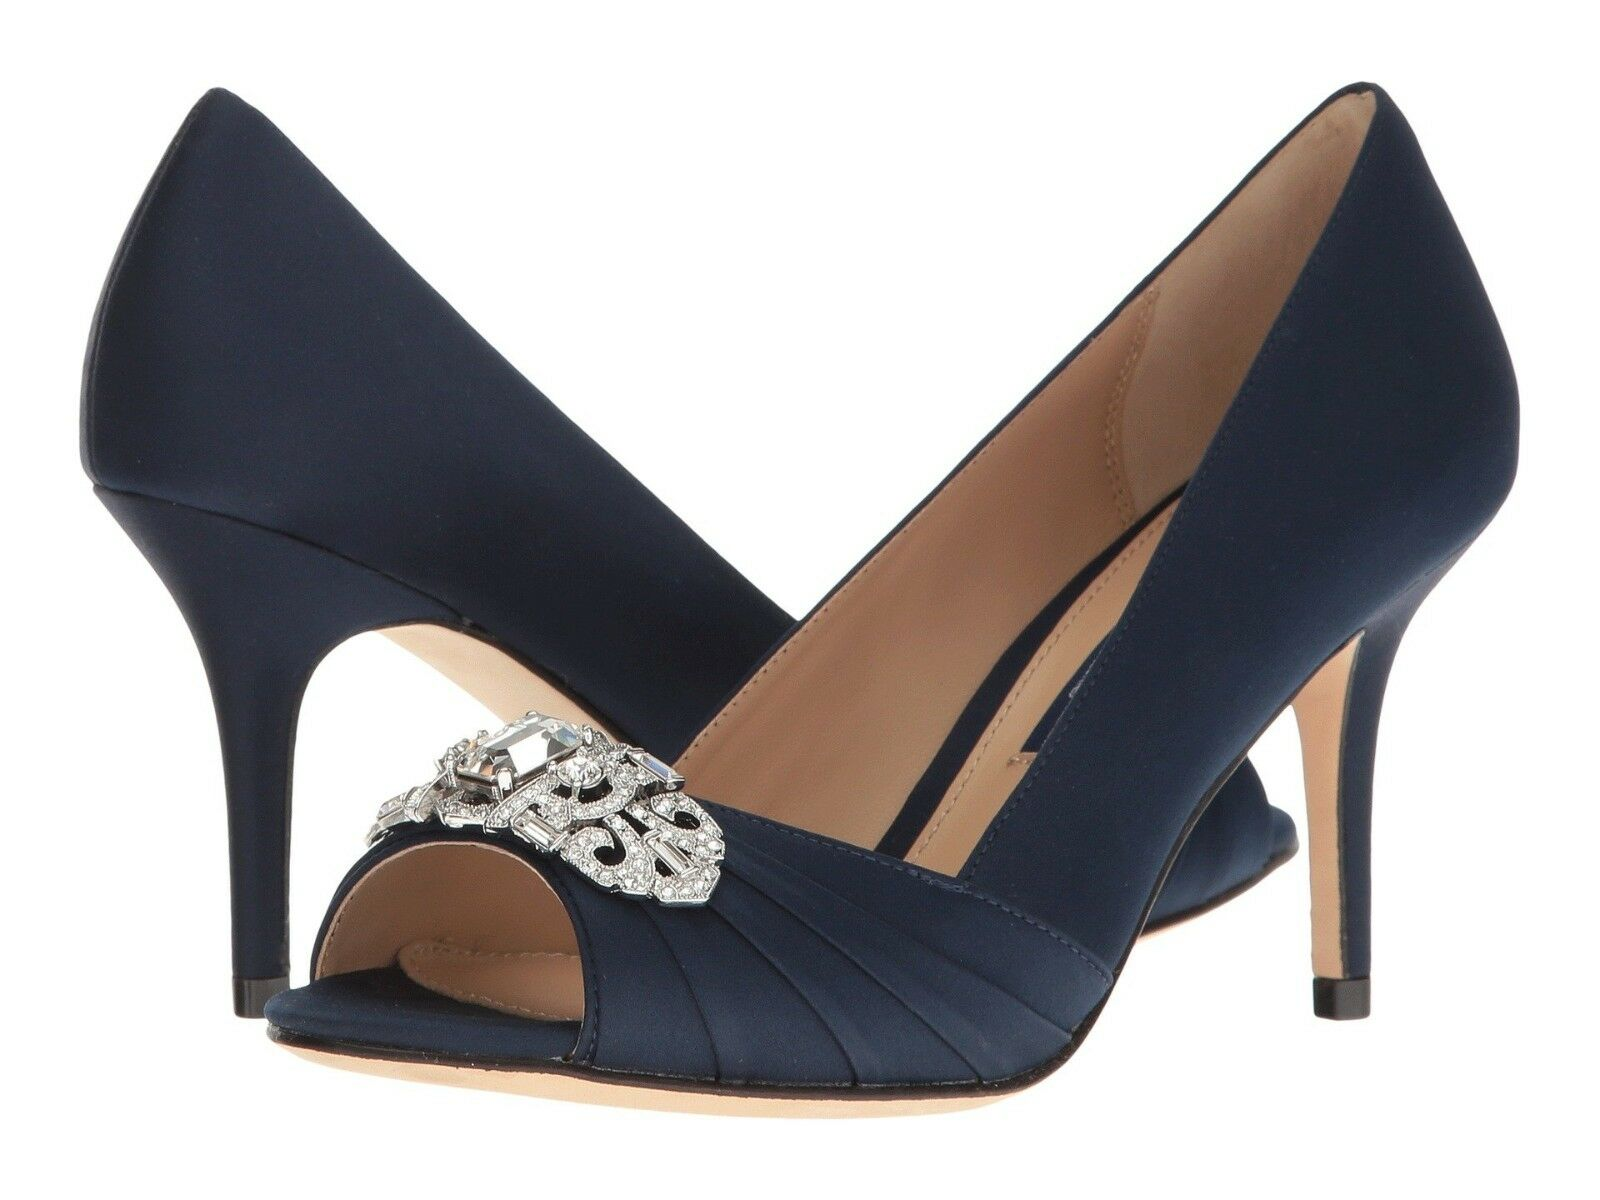 NIB Nina Verity Size 8.5 Navy Satin With Swarovski Crystals Peep Toe Pumps  229